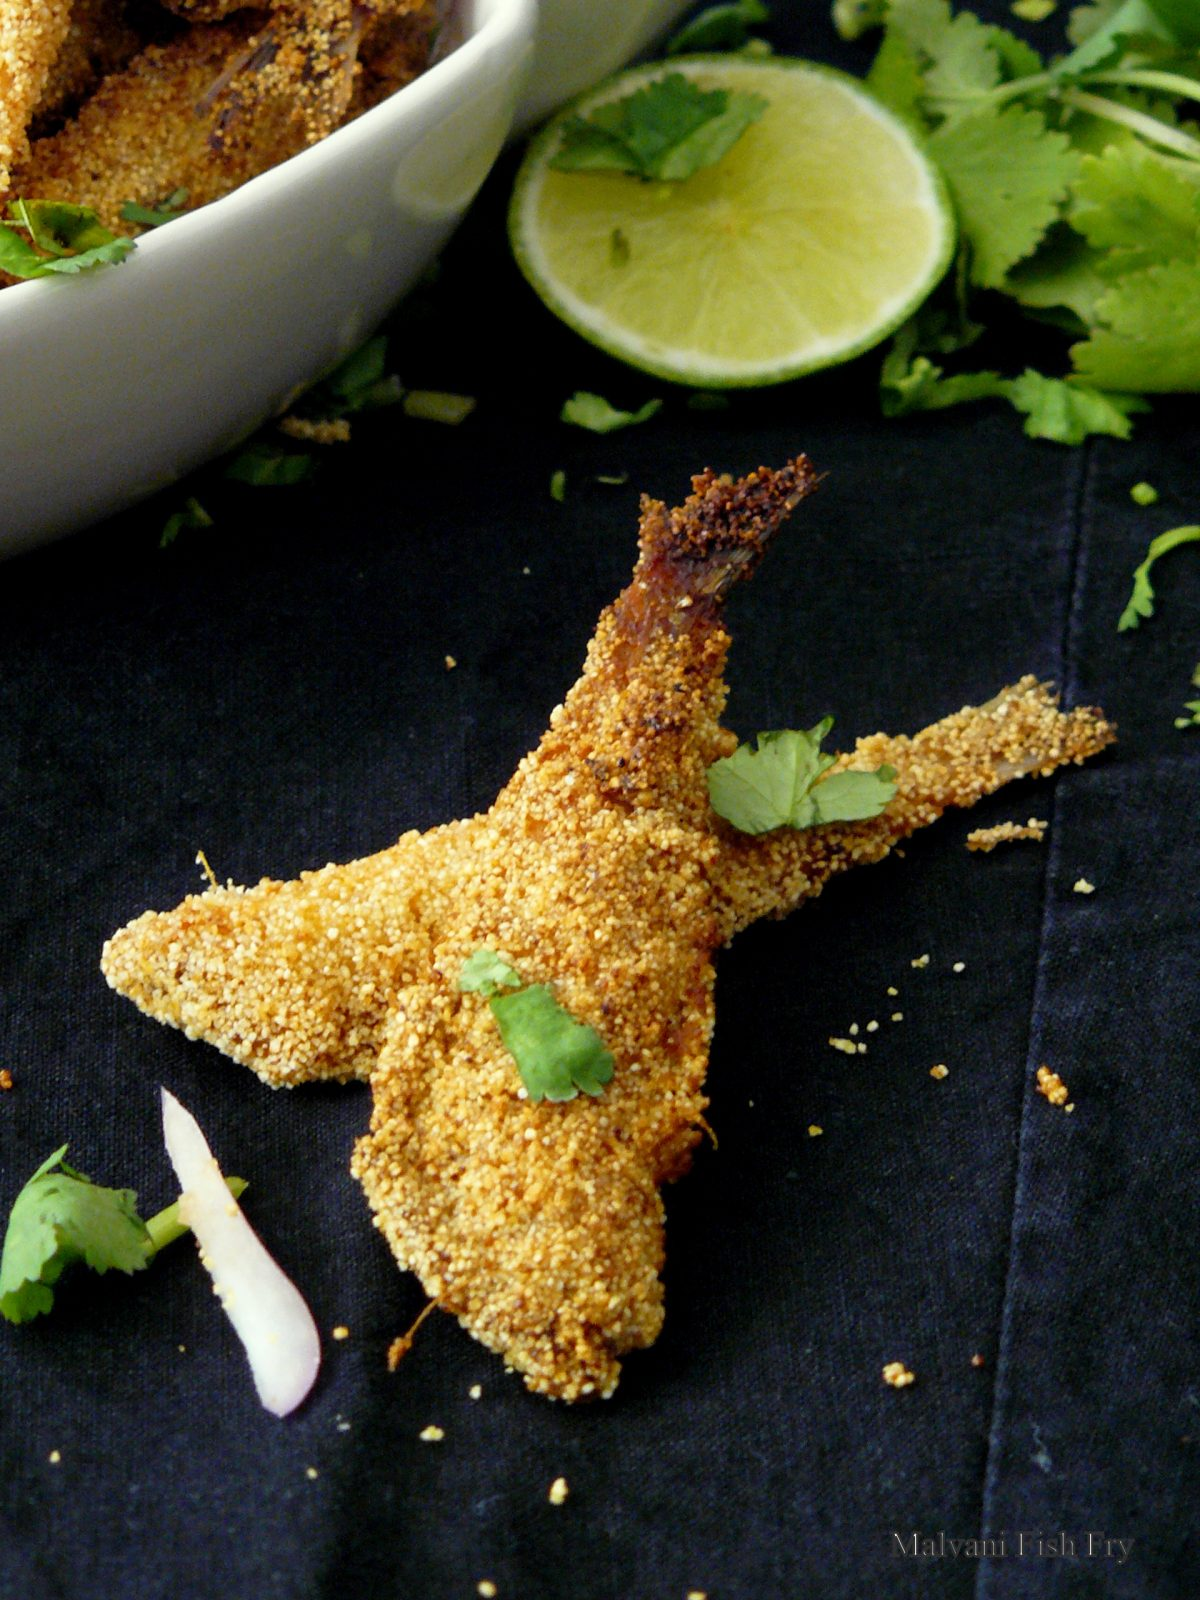 Malvani Fish Fry - a crunchy, mildly spiced fish fry from India - thespiceadventuress.com